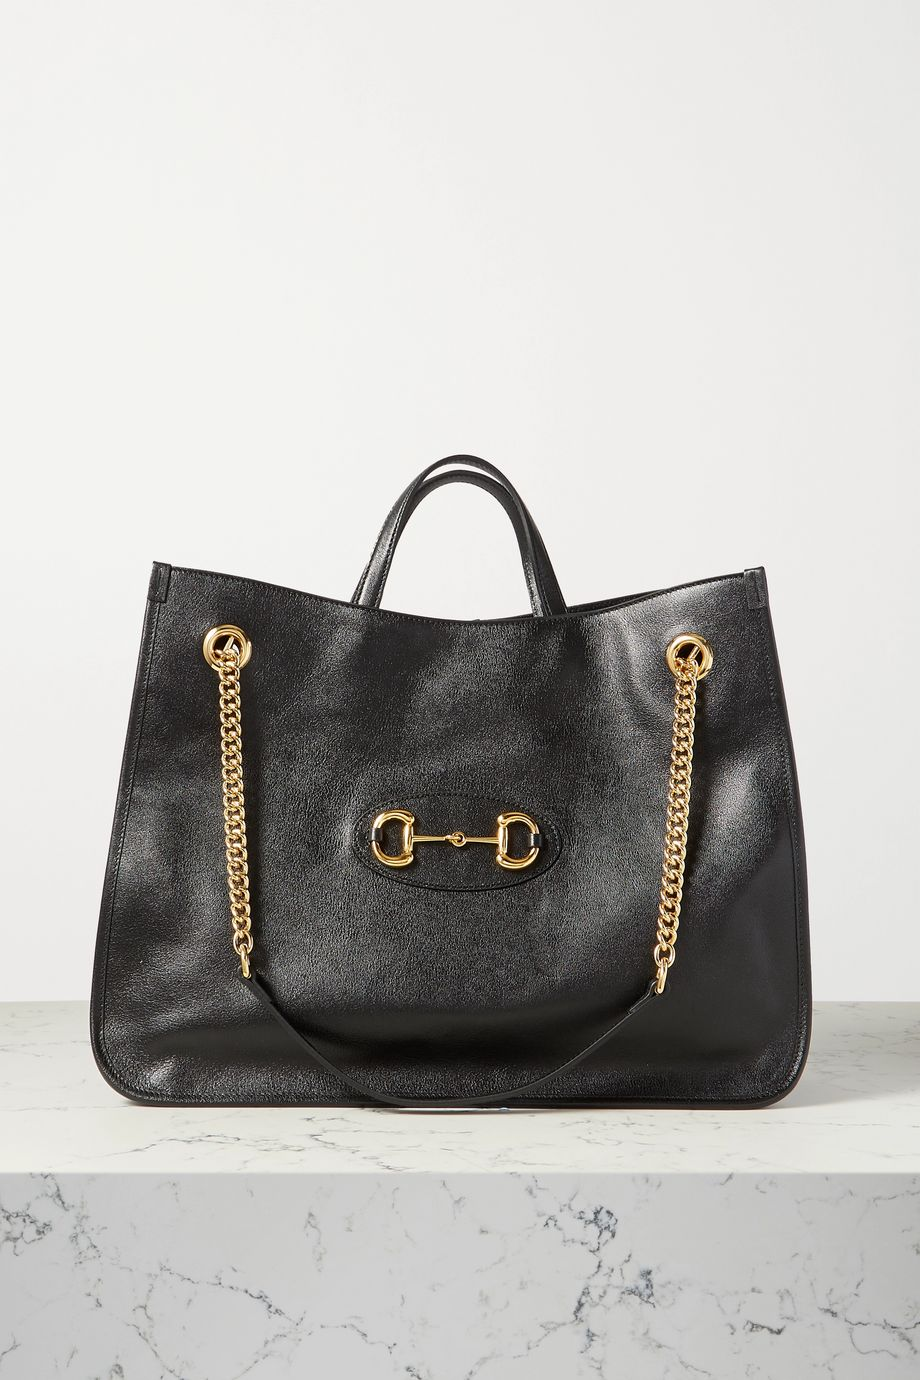 Gucci 1955 Horsebit large textured-leather tote